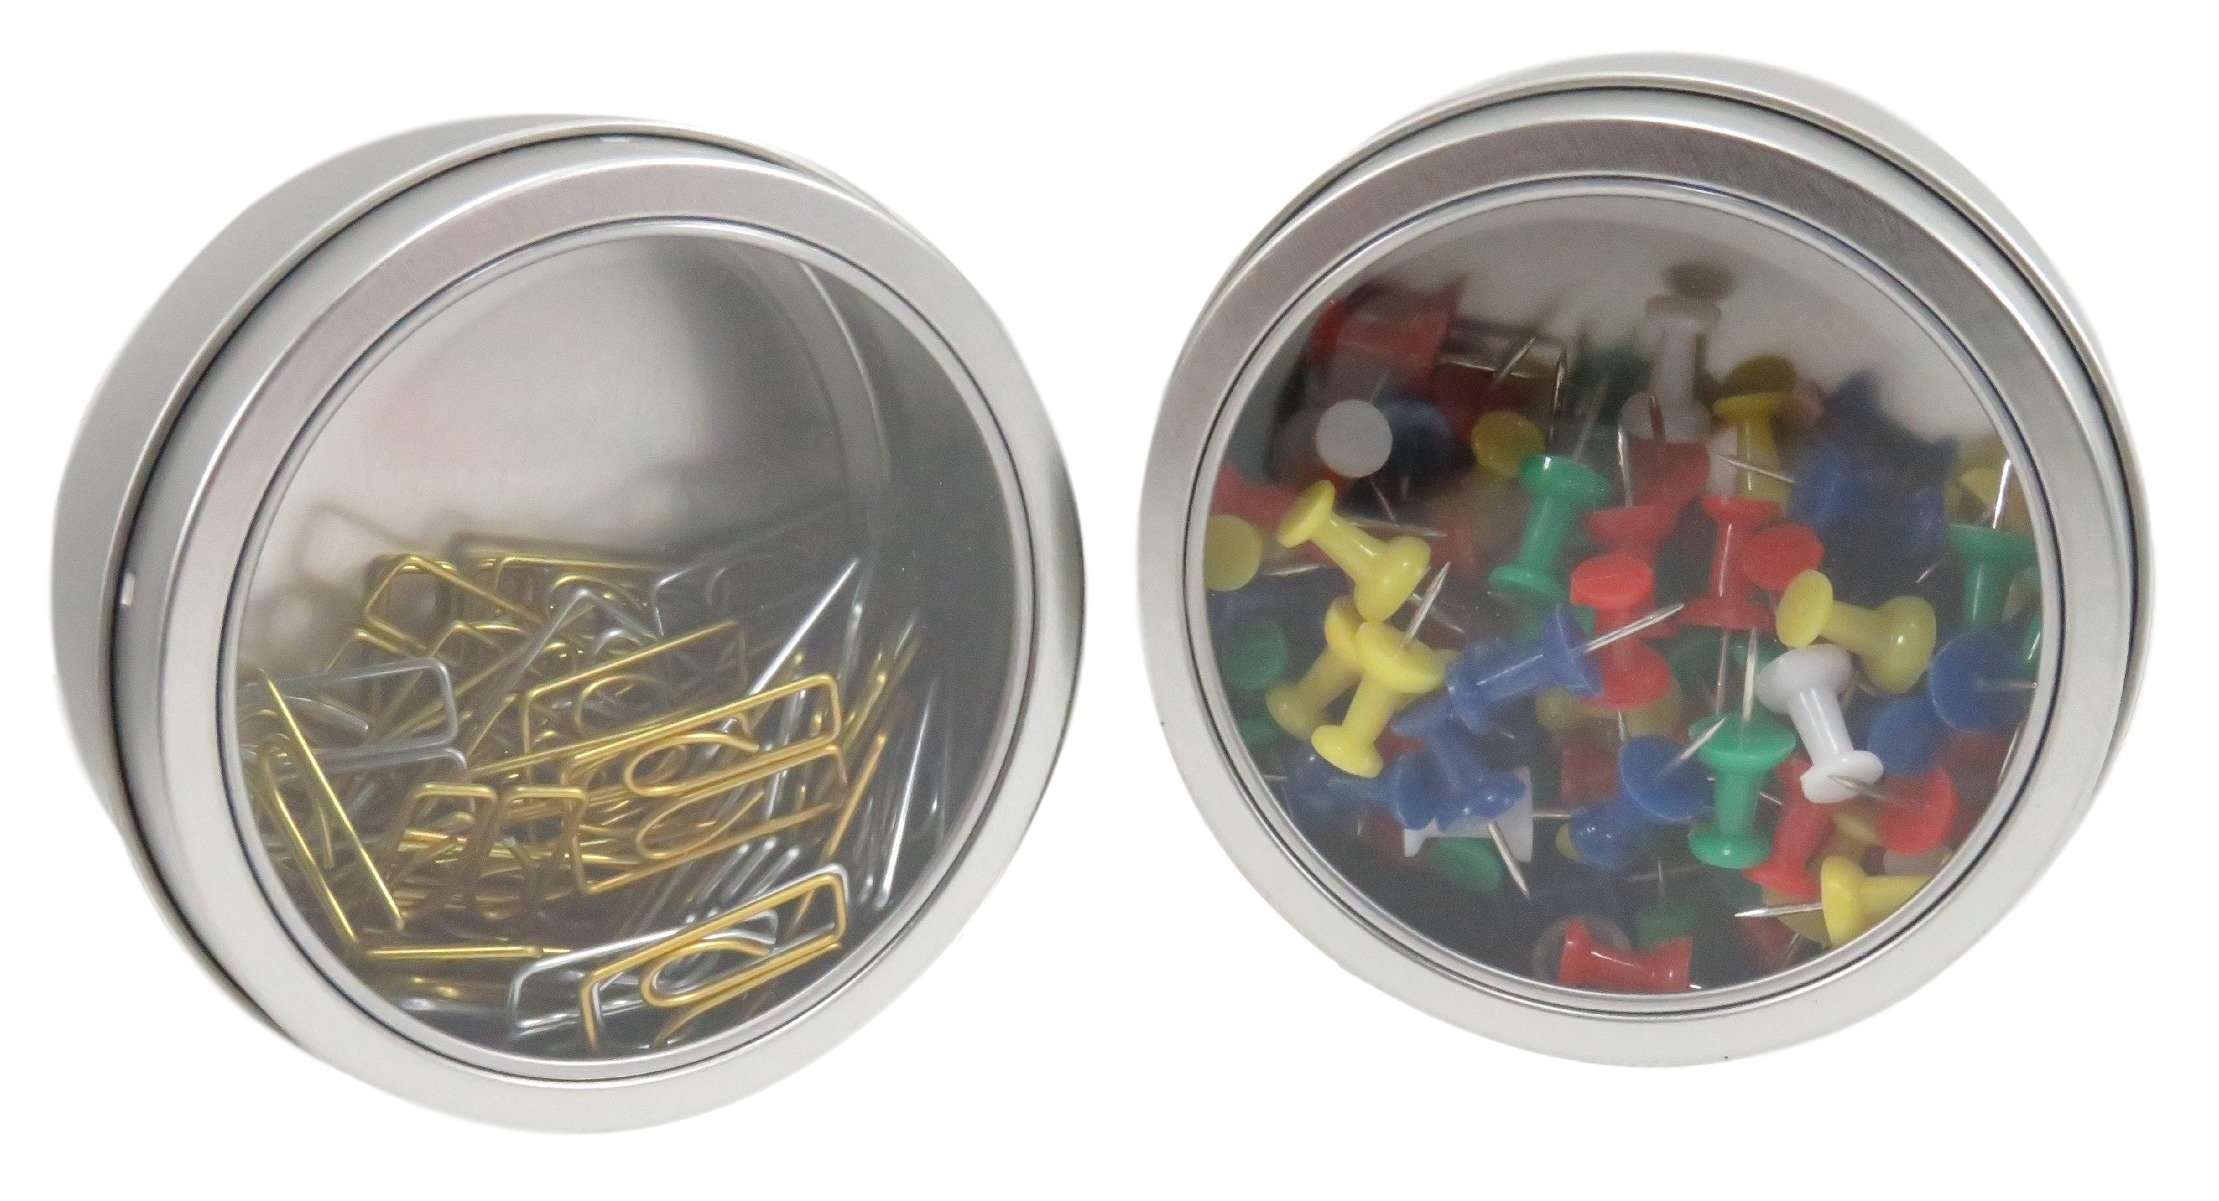 Magnetic Round Paper Clip Holder Container Case Organizer 3.5 x 1.5 Clear Silver (Set of 2)